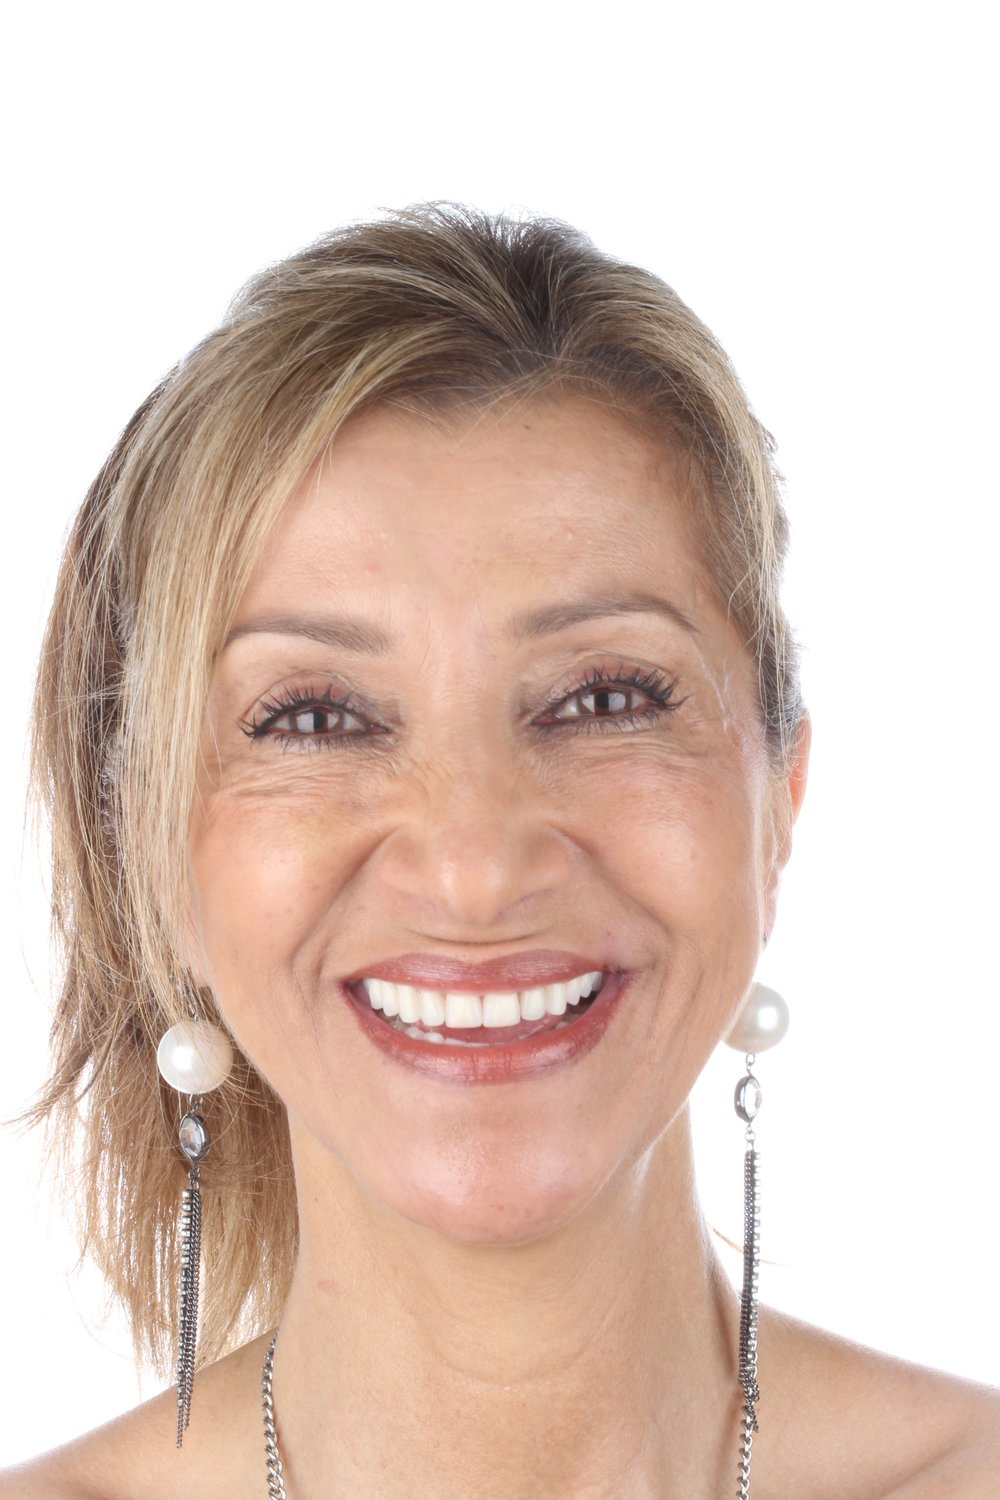 Start Smiling Dental Implant Centers Art of Transformation